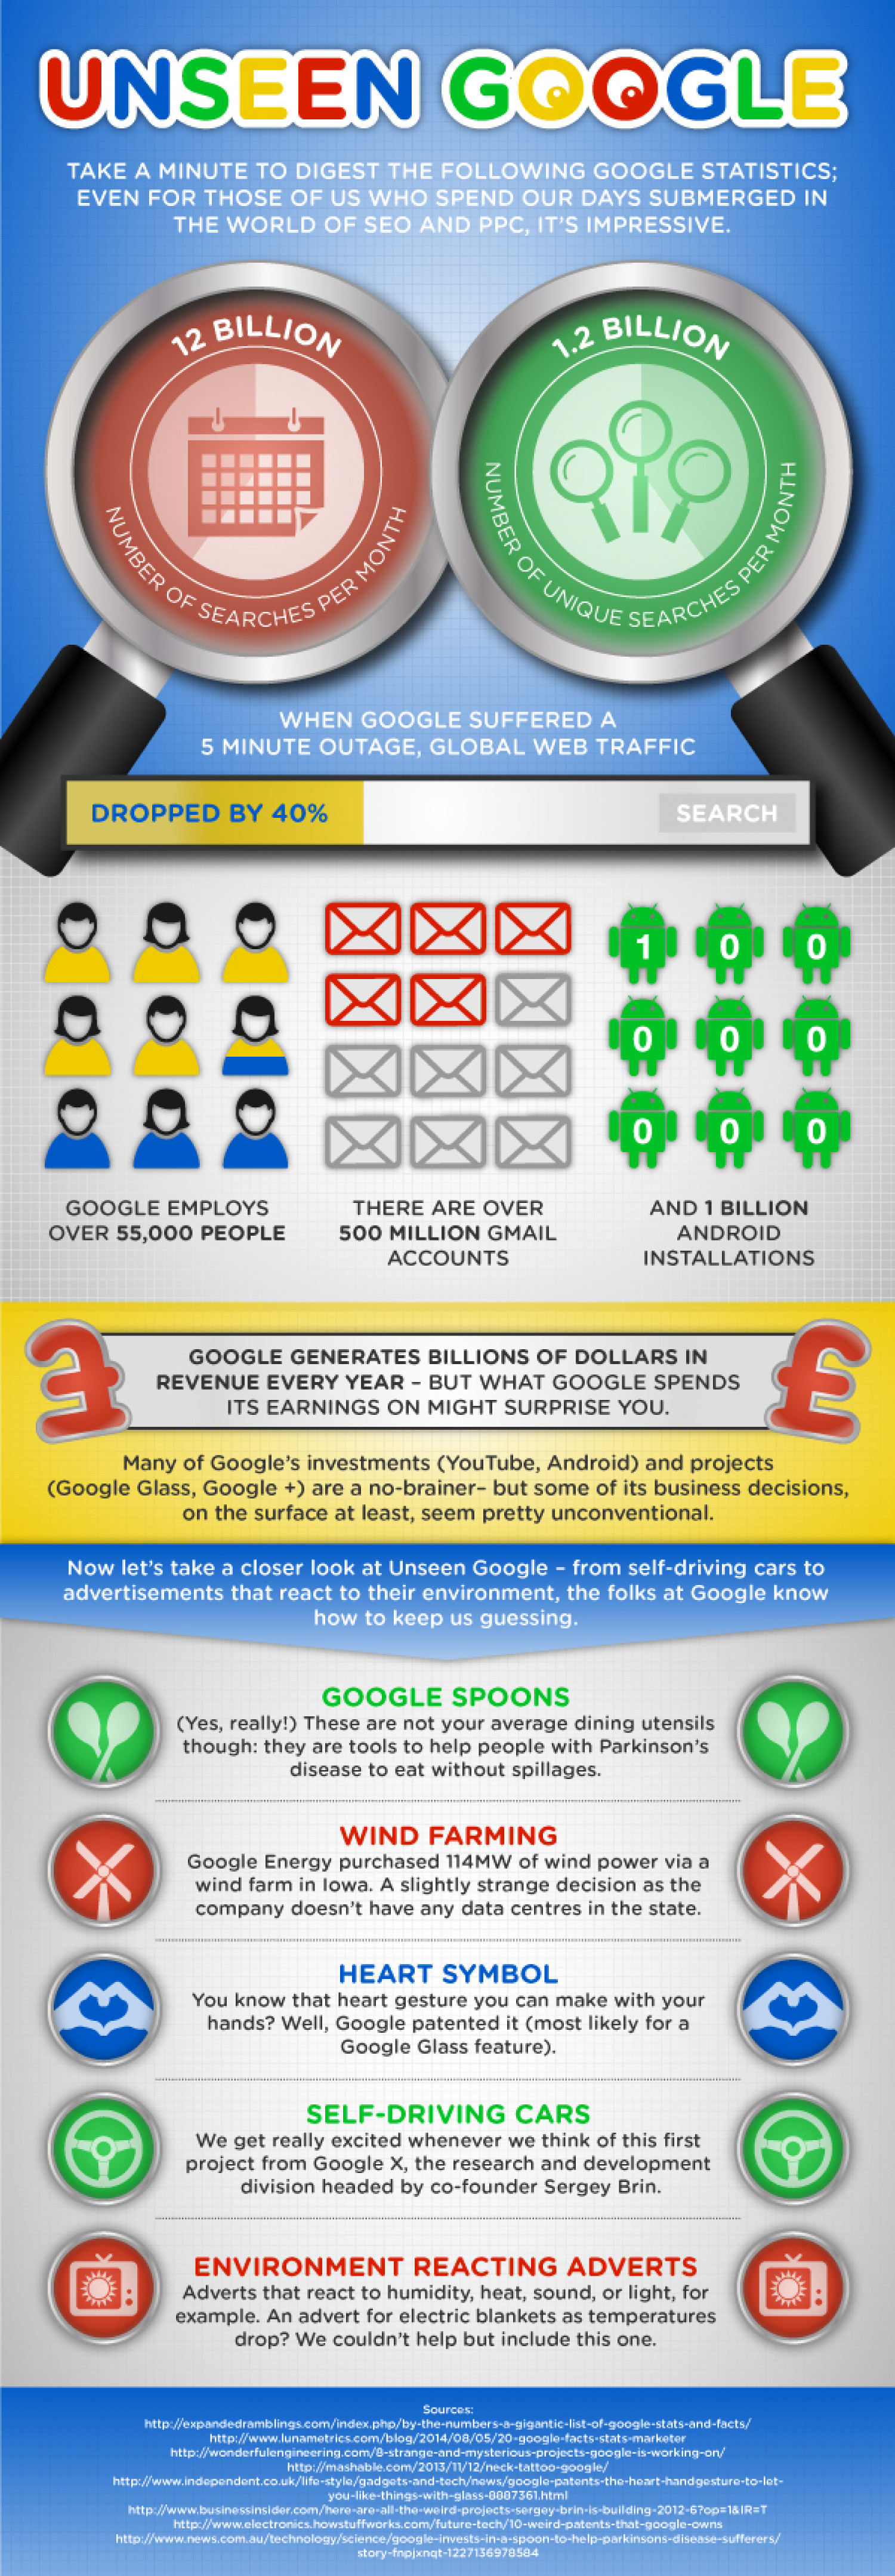 Unseen Google Infographic